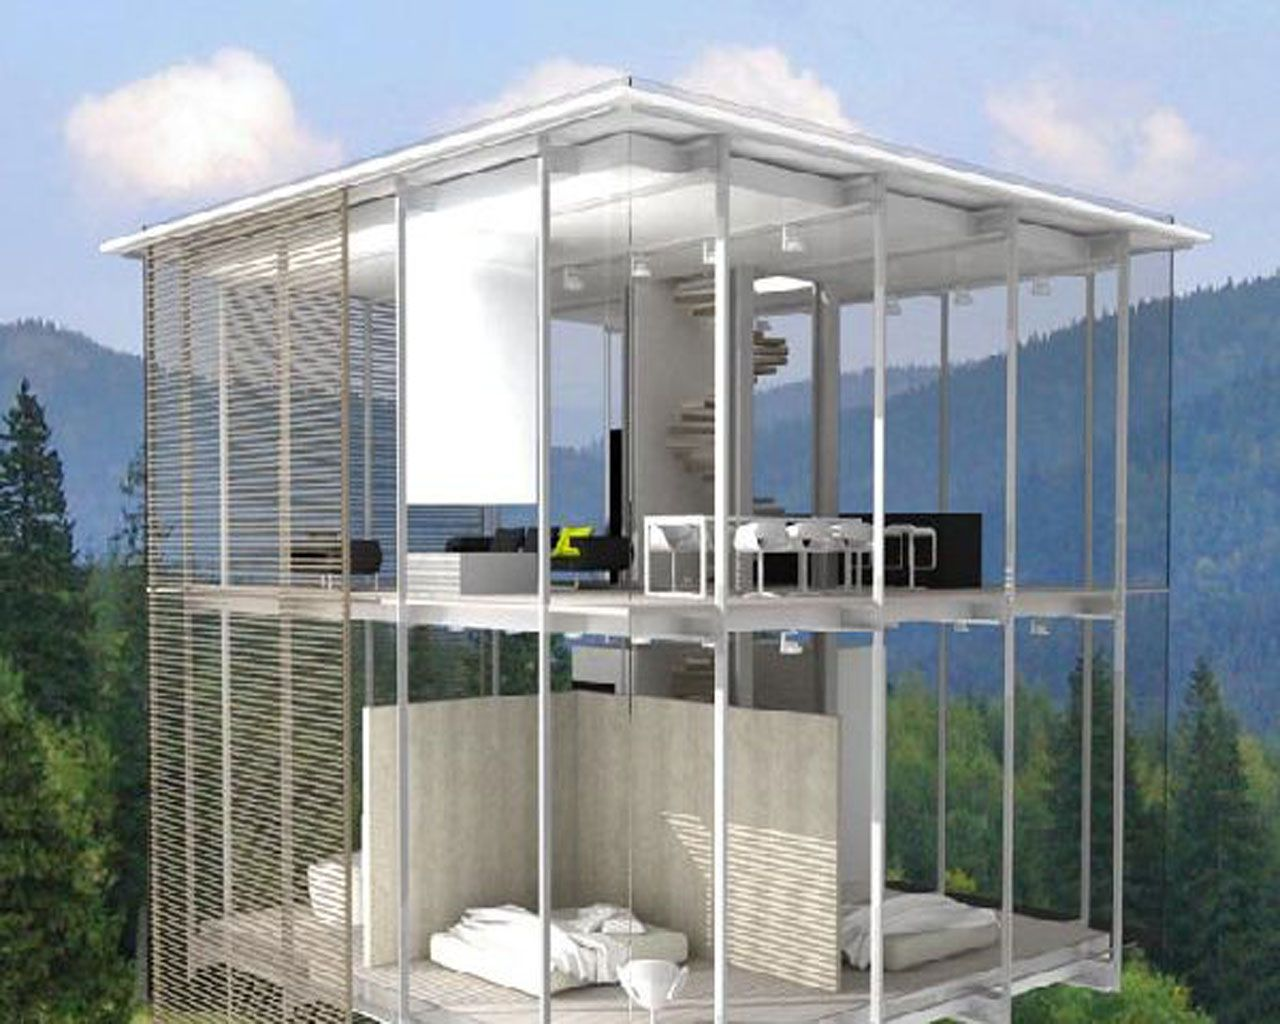 Transparent glass house overlooking the hills.